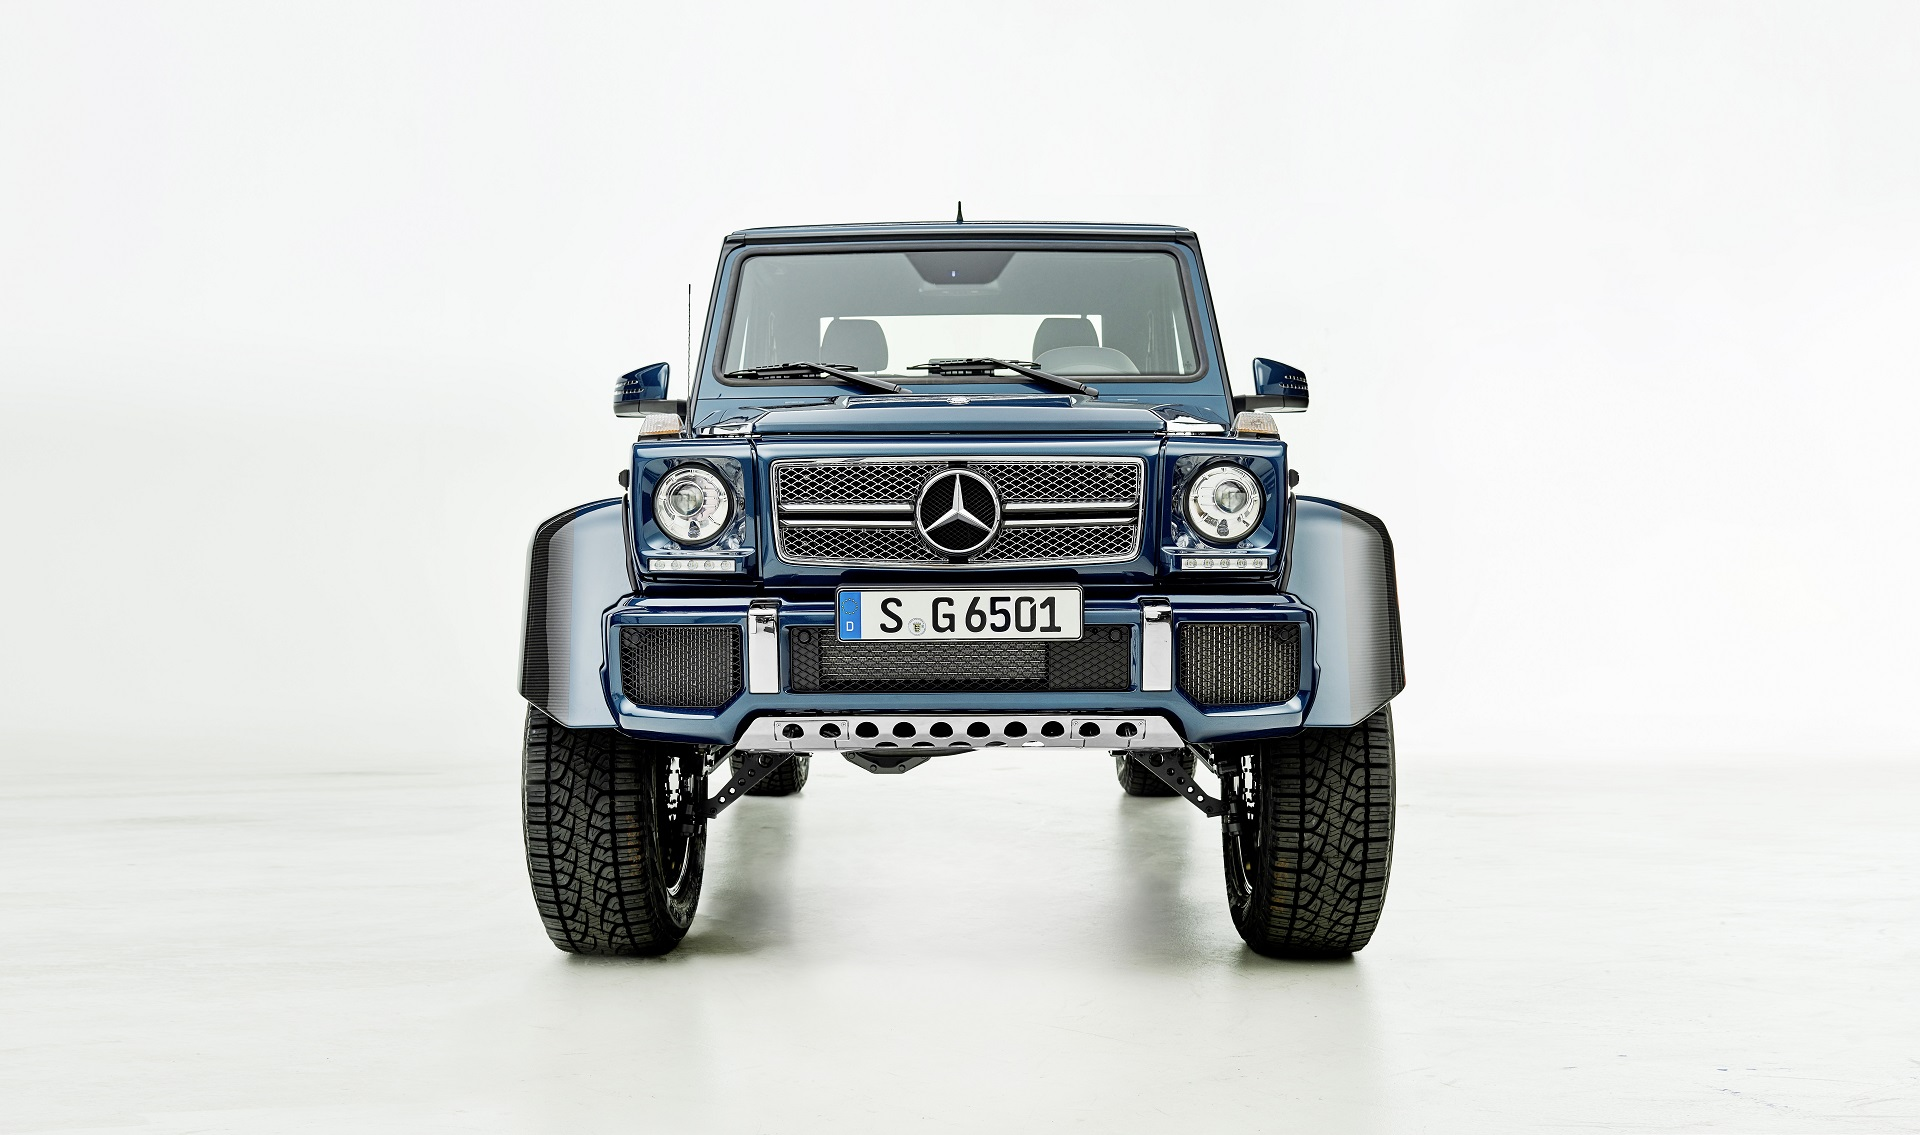 Mercedes-Maybach G 650 Landaulet; *Fuel consumption combined: 17.0 l/100 km, CO2 emissions combined: 397 g/km